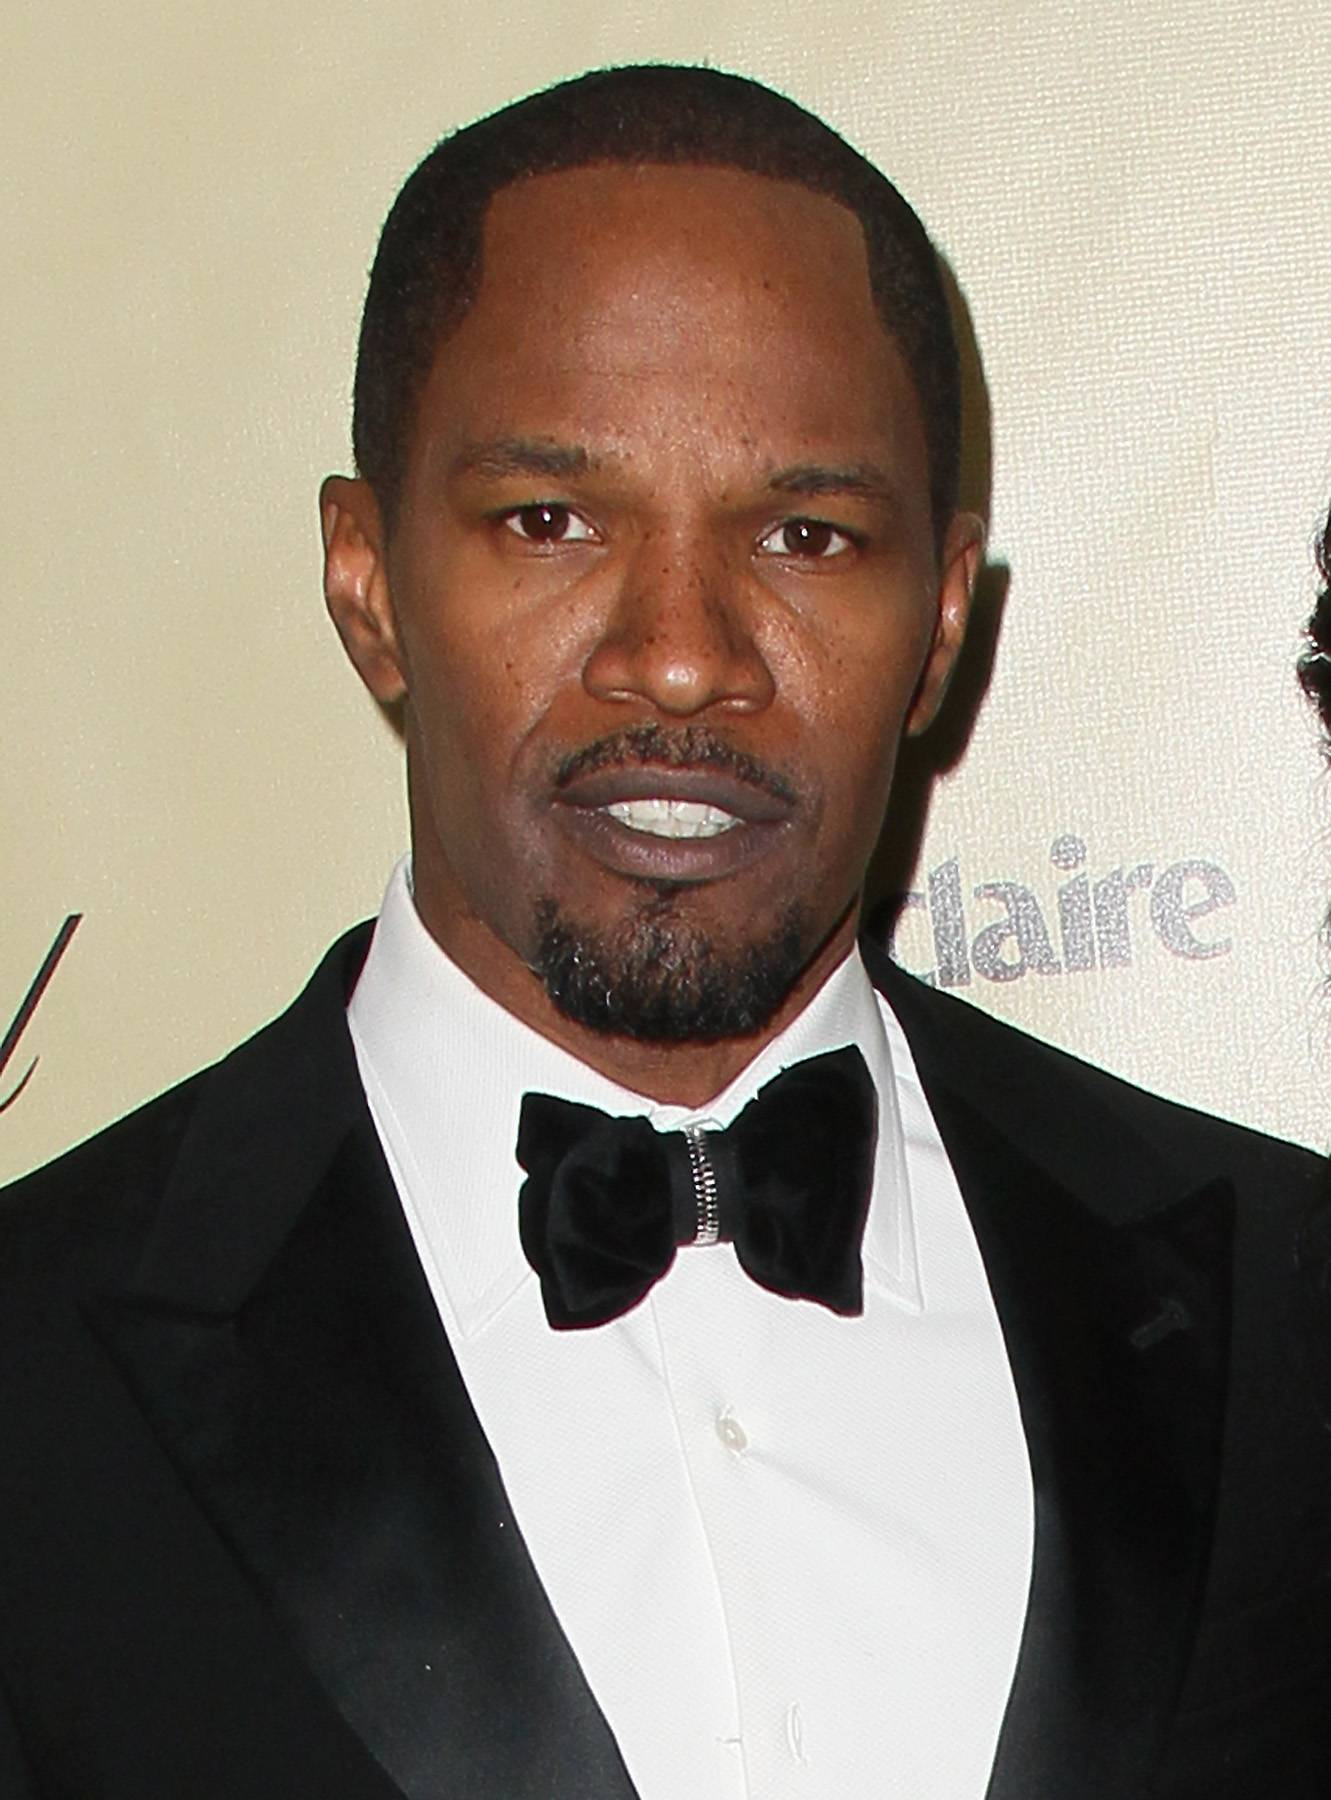 Jamie Foxx - Jamie Foxx took his stance in the current civil rights movement, when he wore a T-shirt featuring Trayvon Martin?s face to the 2013 MTV Music Awards. Foxx backed the Martin familylast Marchdemanding justice for their son at the Million Hoodies March in New York City.(Photo: David Livingston/Getty Images)